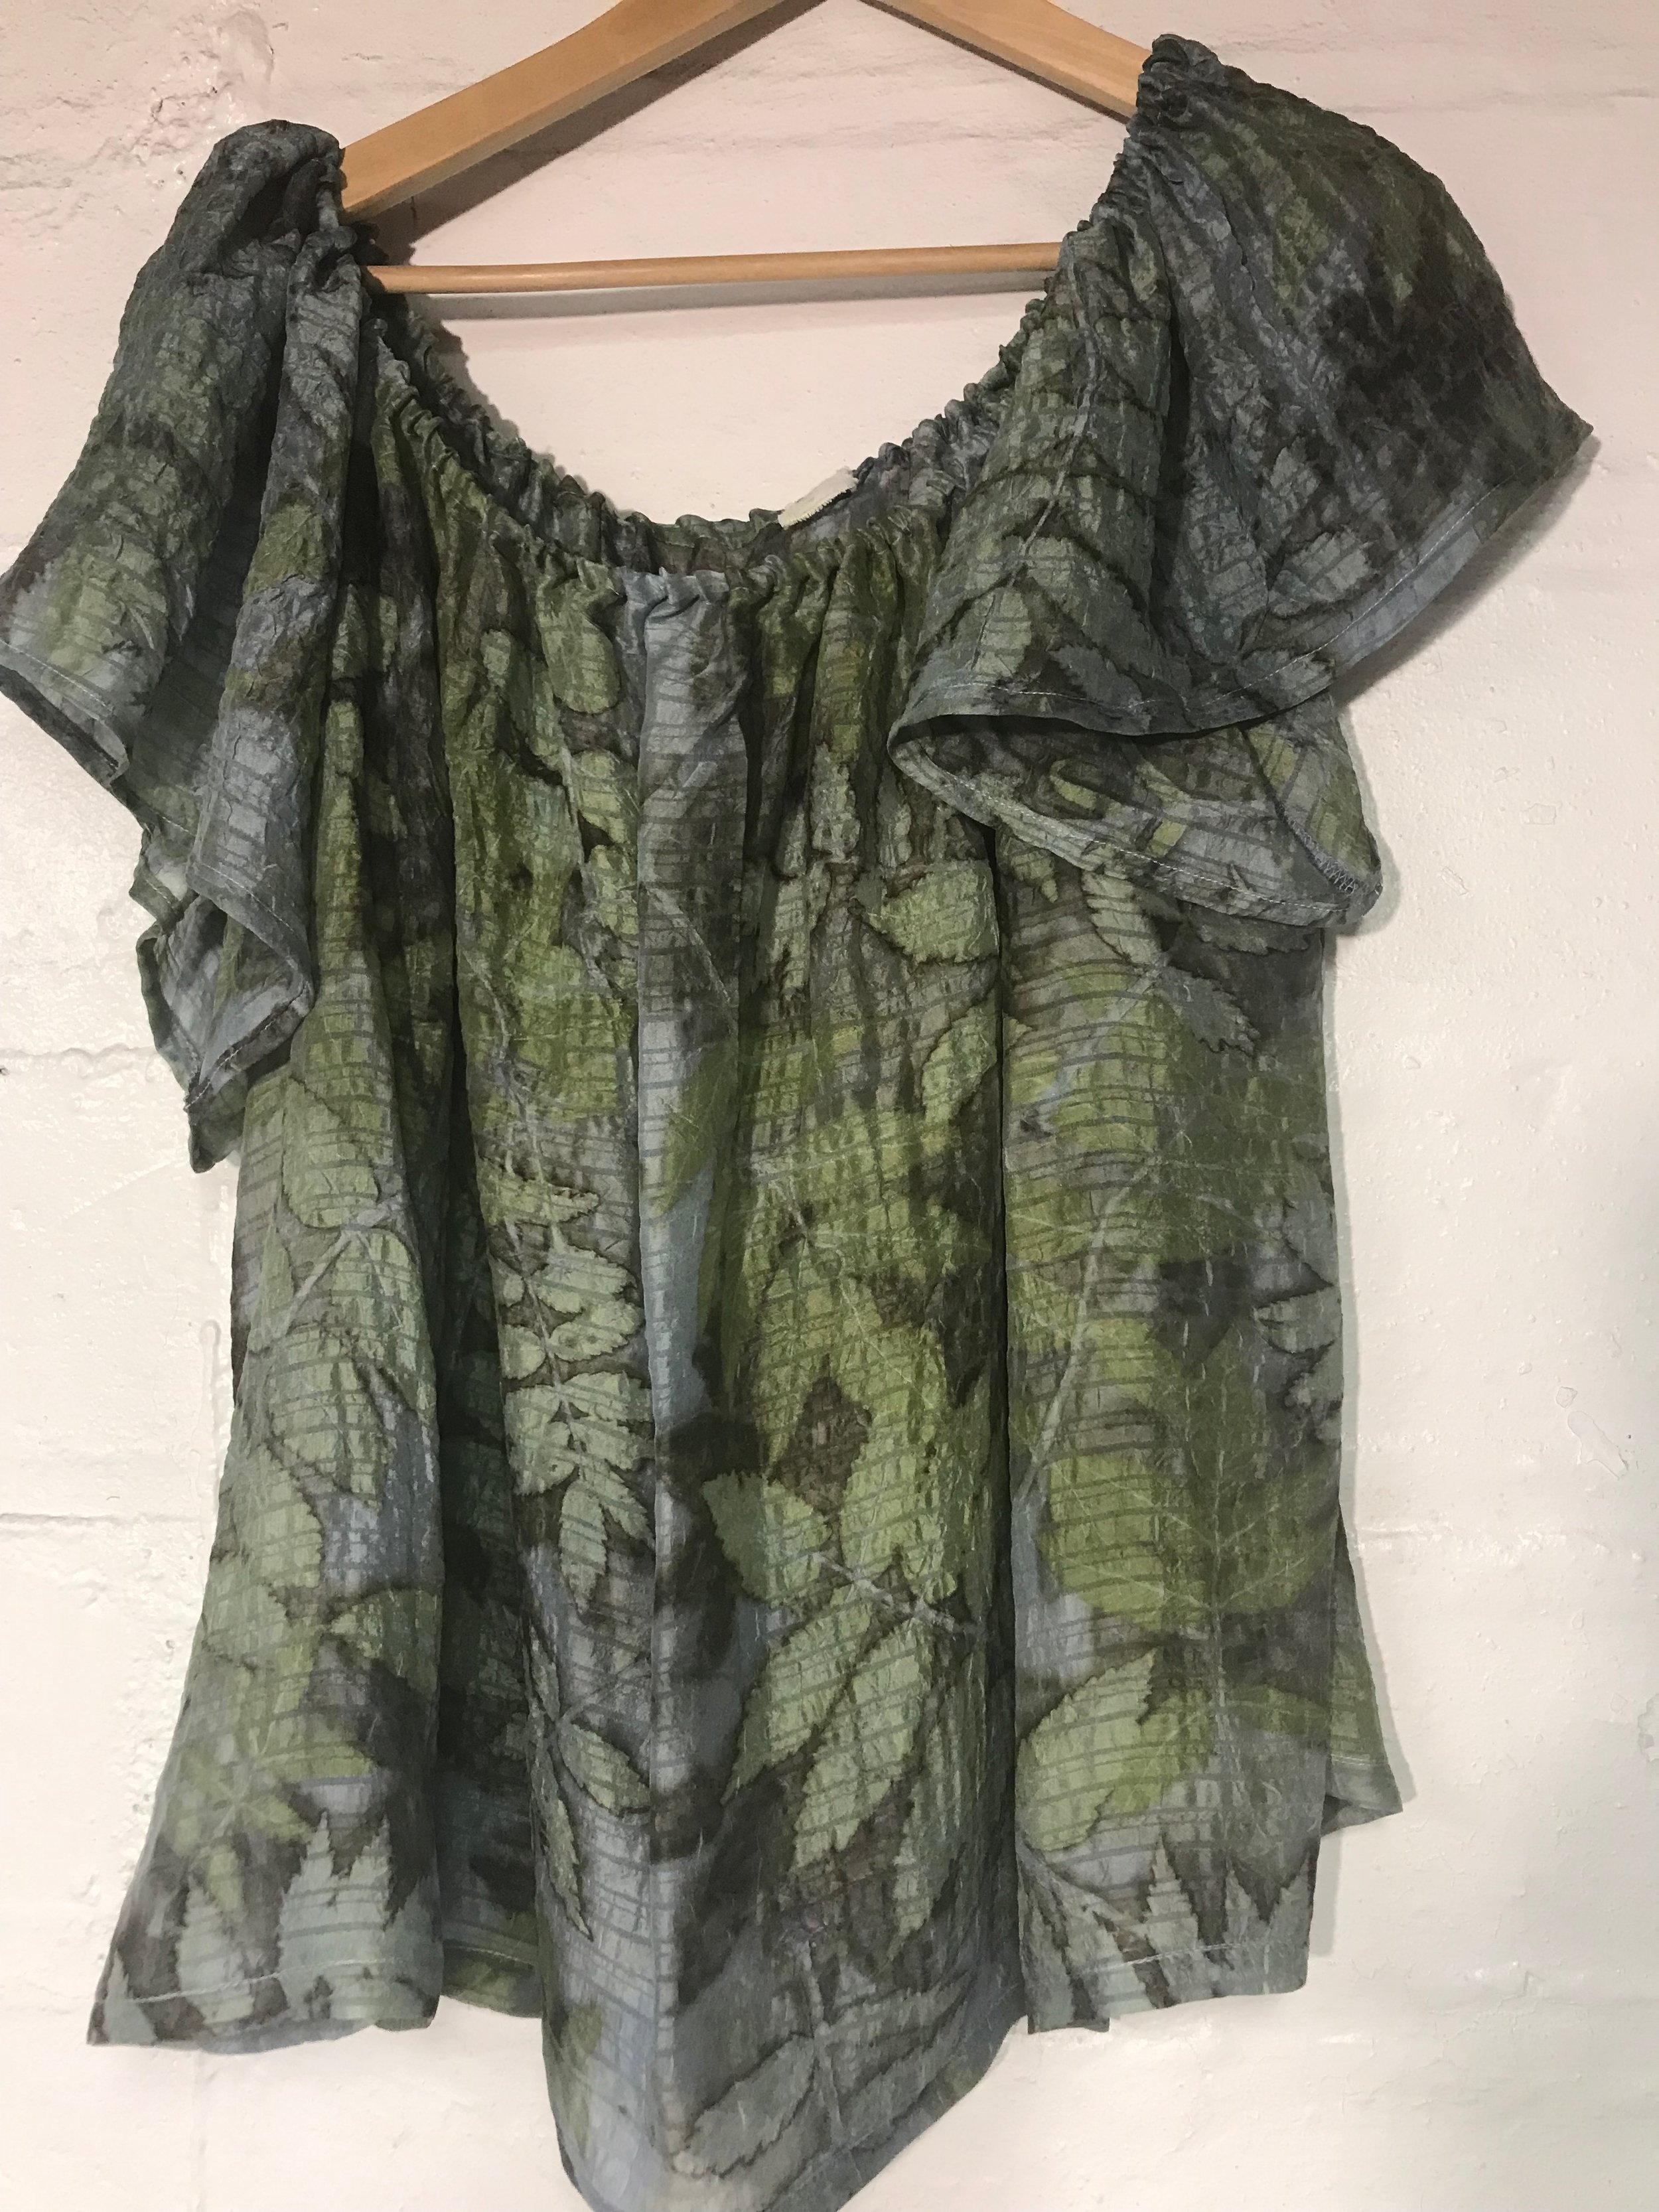 Silk dyed in indigo and printed with sumac and false spirea leaves.